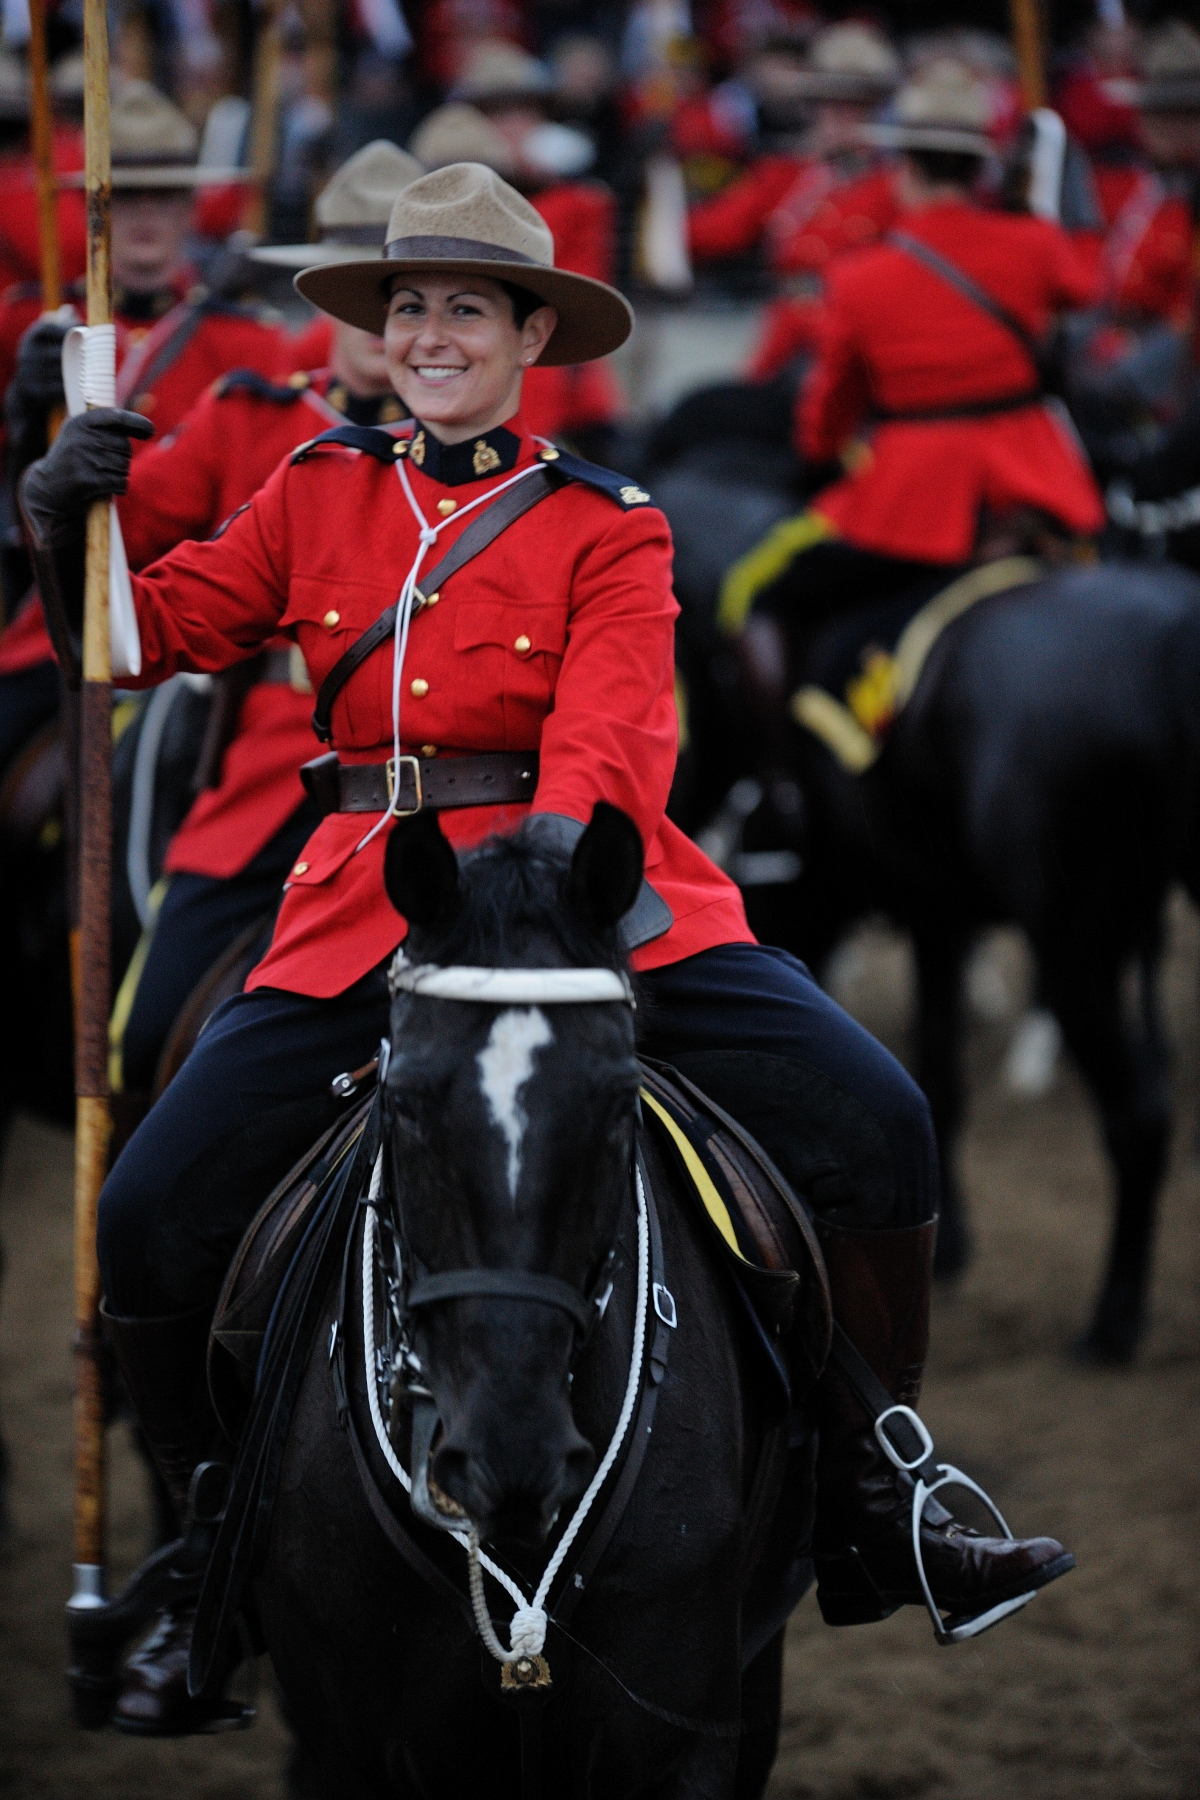 Members of the Musical Ride are, first and foremost, police officers who, after at least two years of active police work, volunteer for duty with the Musical Ride. Most members are non-riders prior to their equestrian training with the RCMP; however, once they complete the courses of instruction, they not only become riders but ambassadors of goodwill.